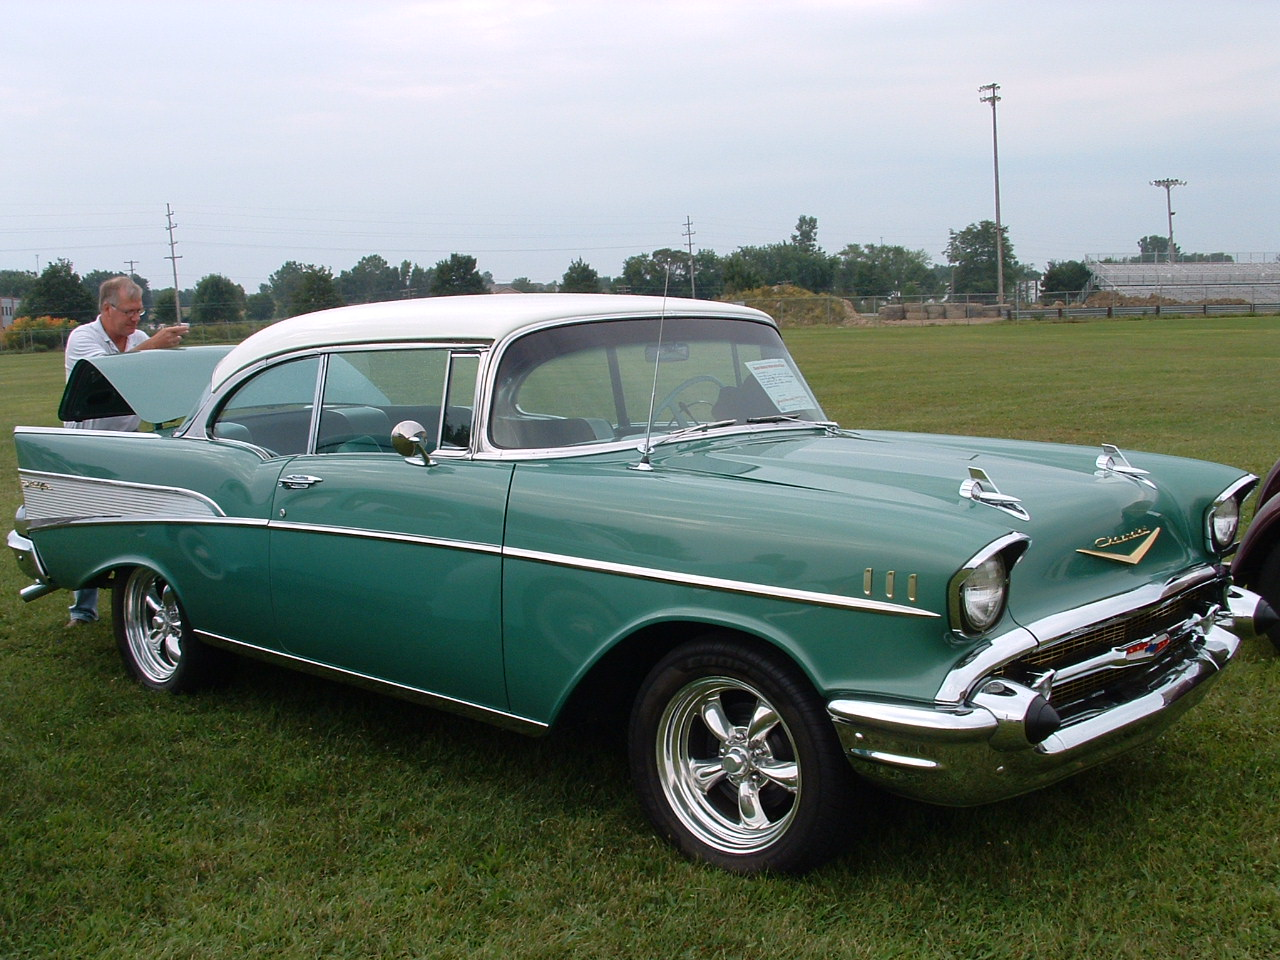 57 chevy for sale cheap autos post. Black Bedroom Furniture Sets. Home Design Ideas